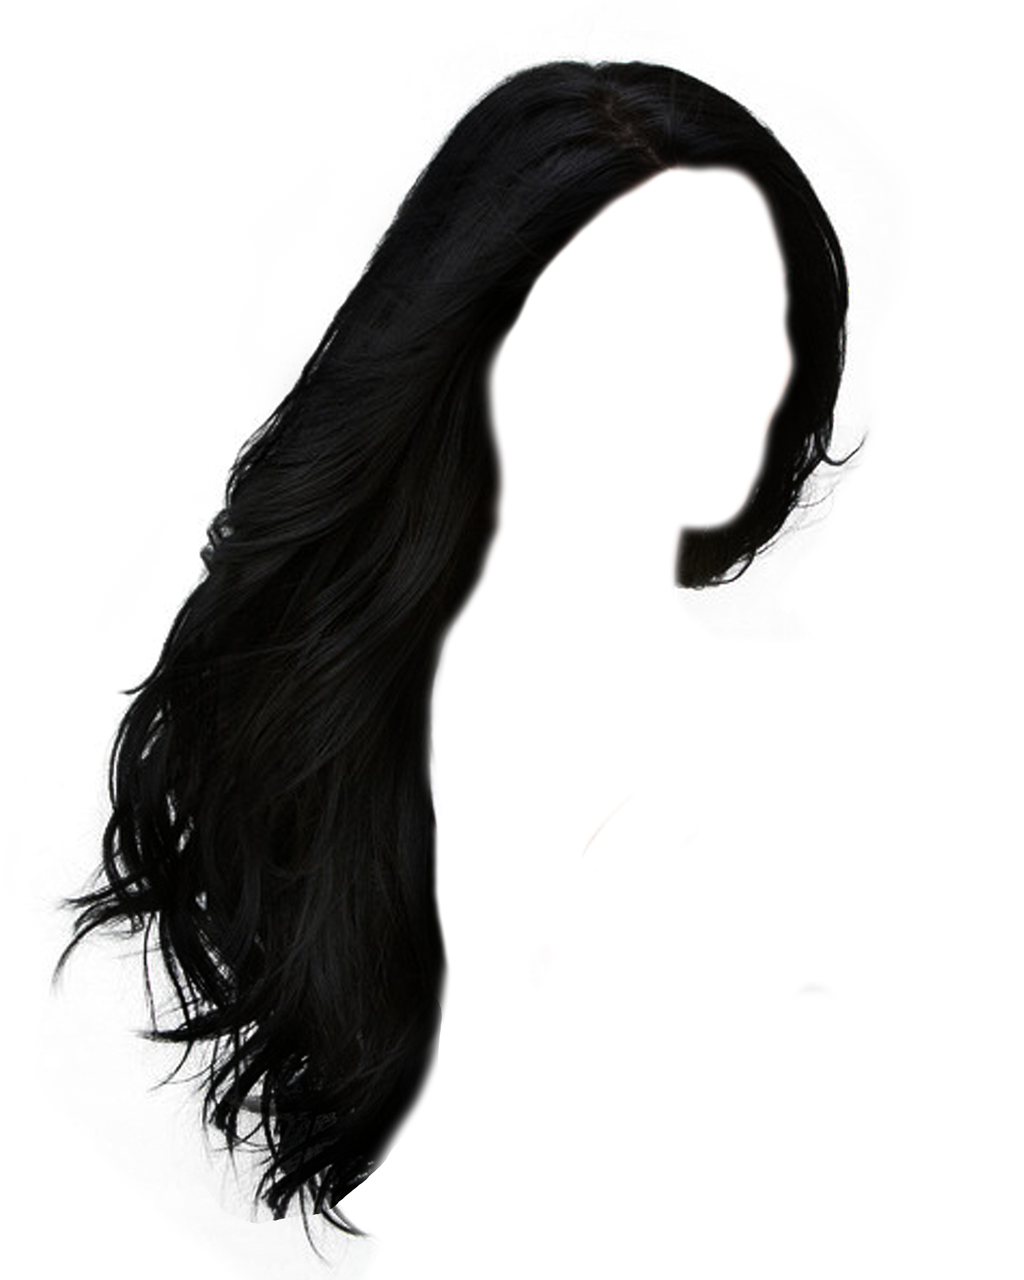 Png Hair 2 by Moonglowlilly on DeviantArt